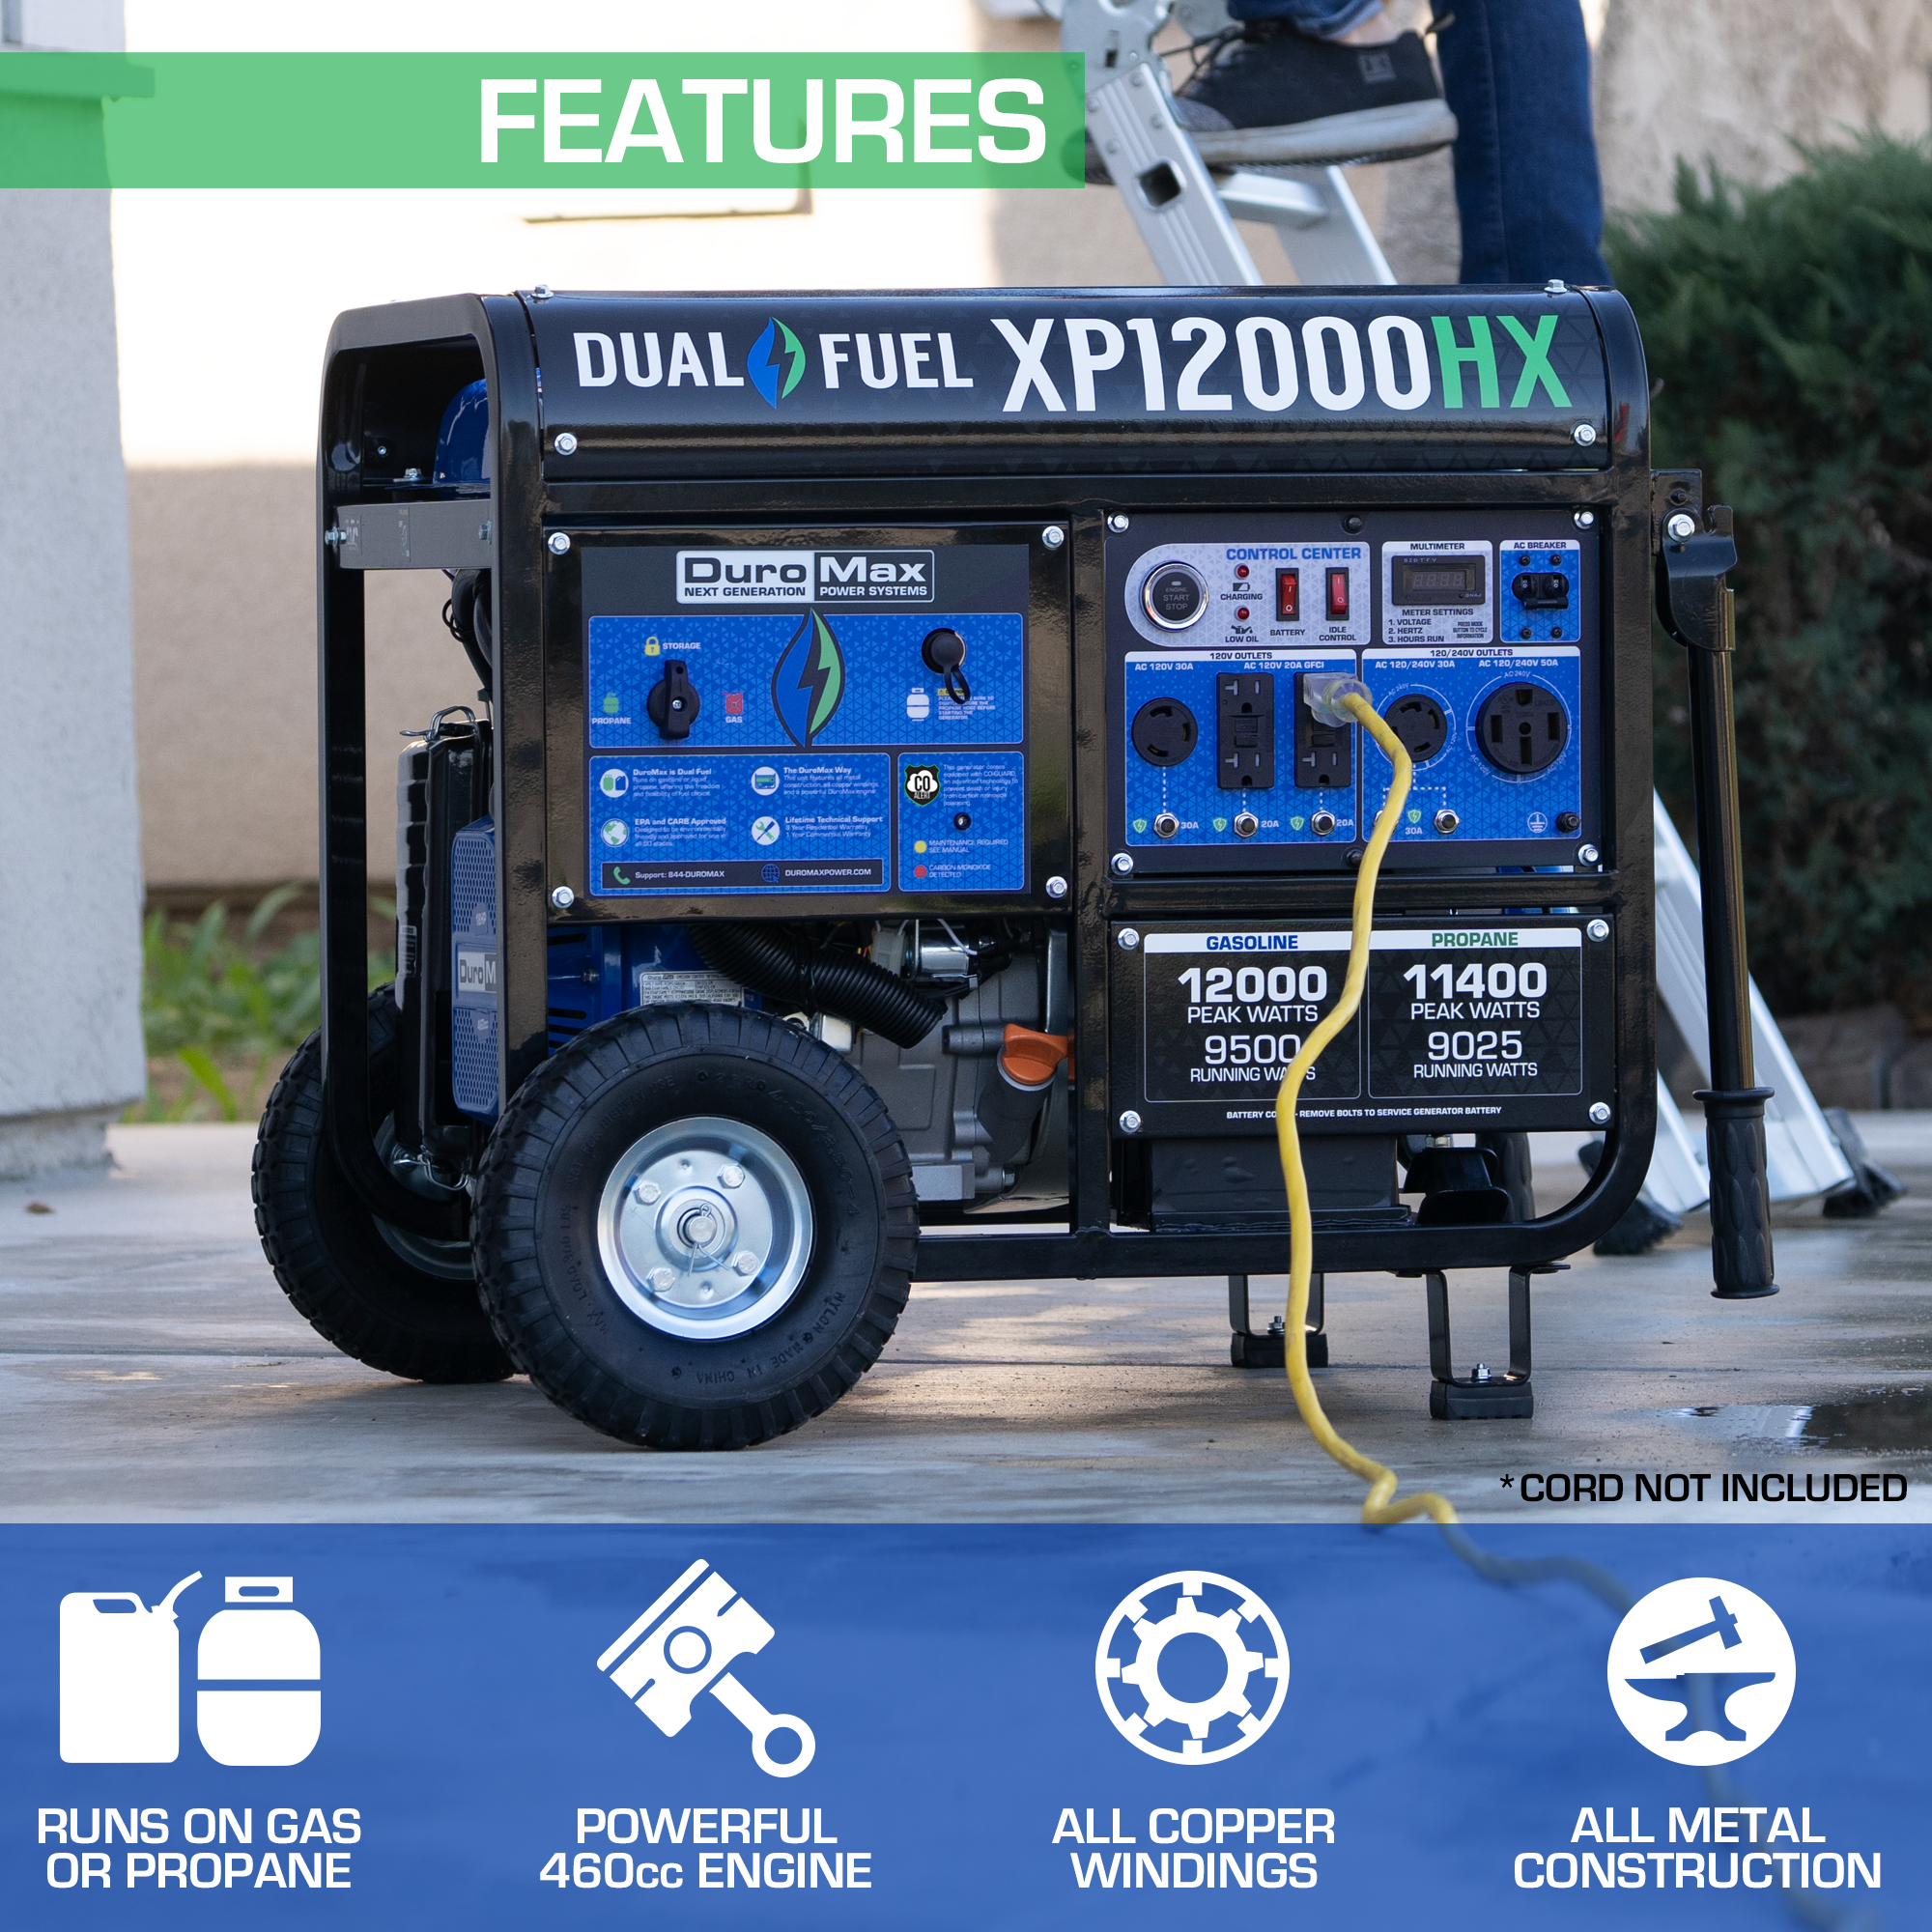 DuroMax XP12000HX 12,000-Watt 18 HP Dual Fuel Gas Propane Portable Generator with CO Alert